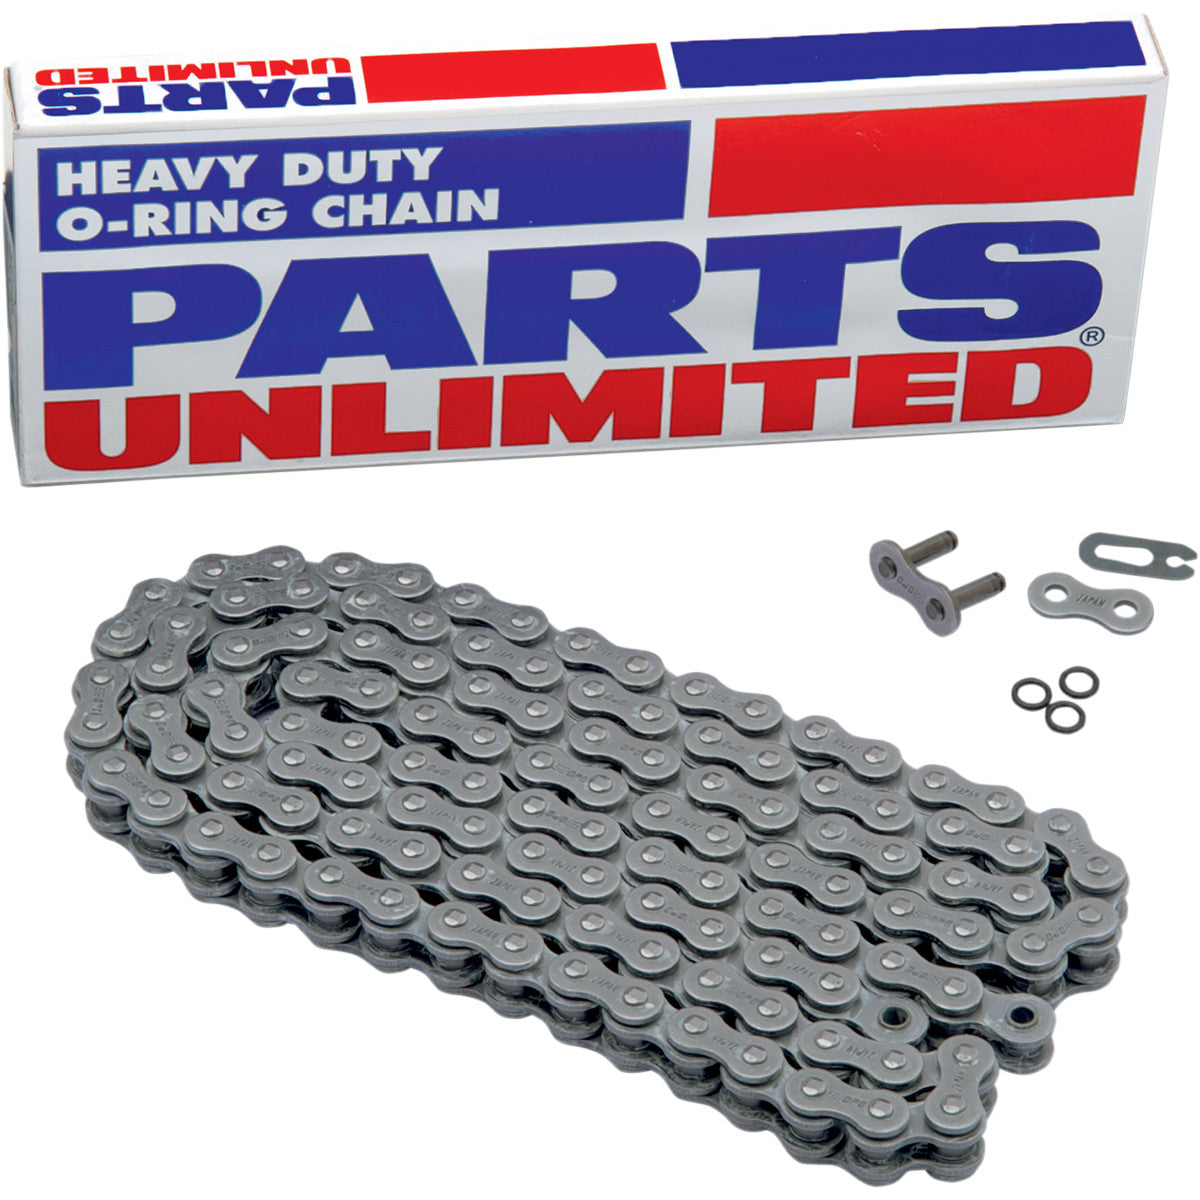 PARTS UNLIMITED-CHAIN CHAIN PU 520 O-RING X 98L